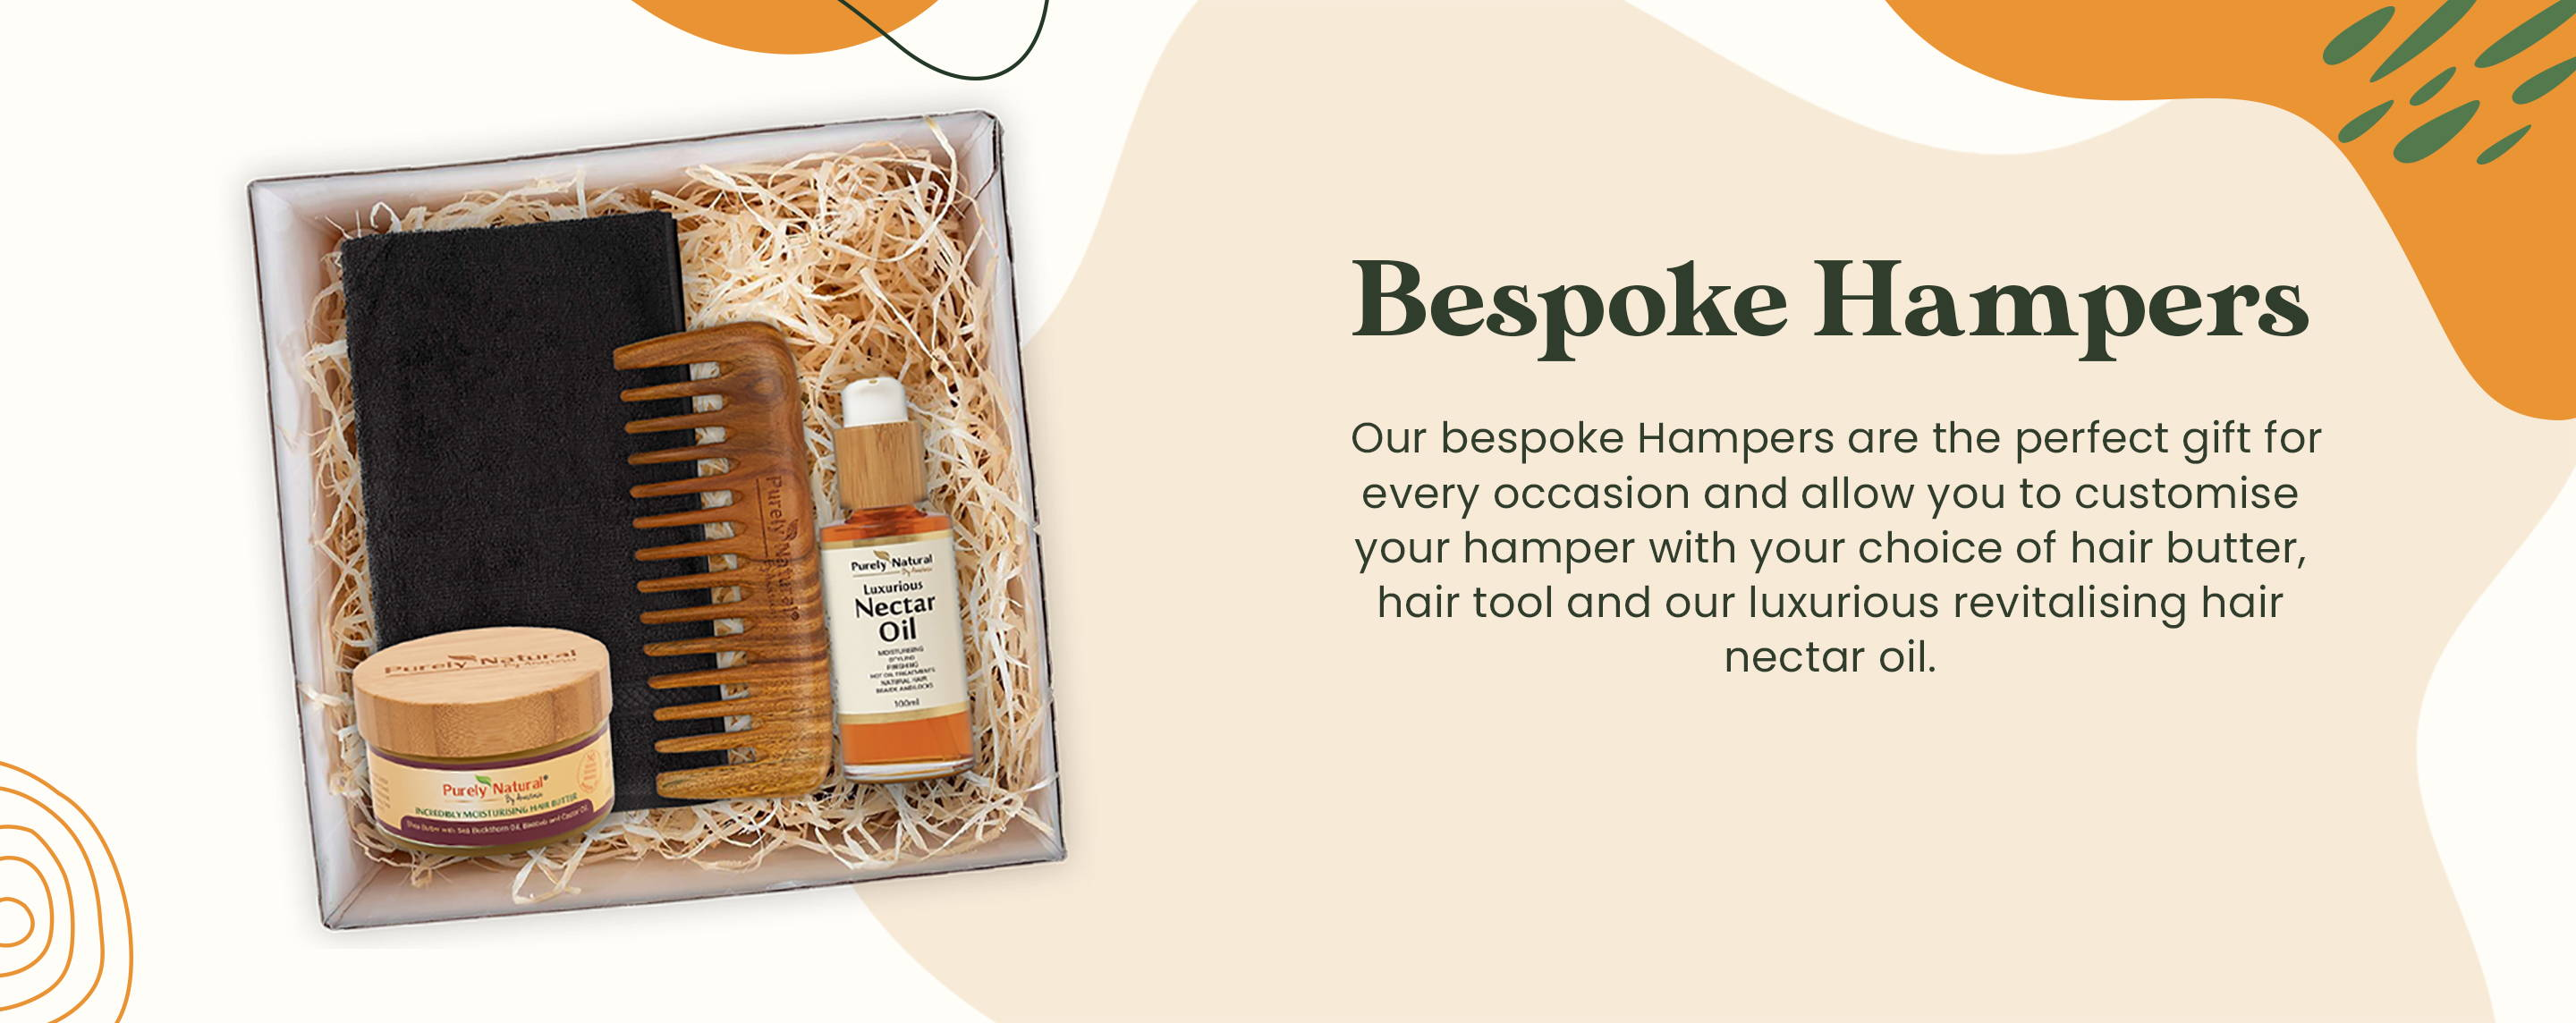 Purely Natural By Anastasia Bespoke Hampers